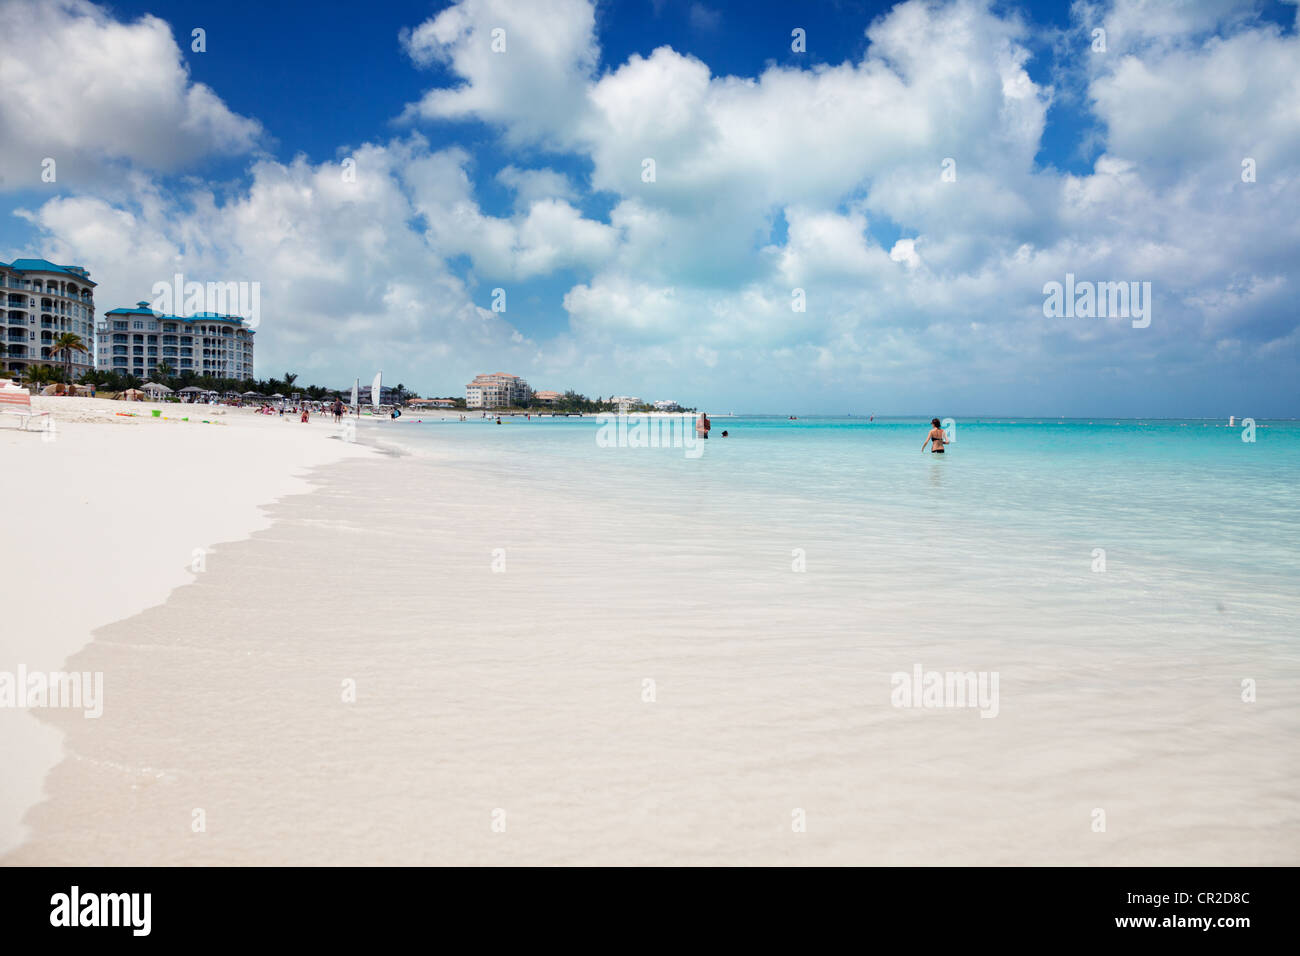 Calm turquoise waters of Grace Bay, Turks & Caicos - Stock Image